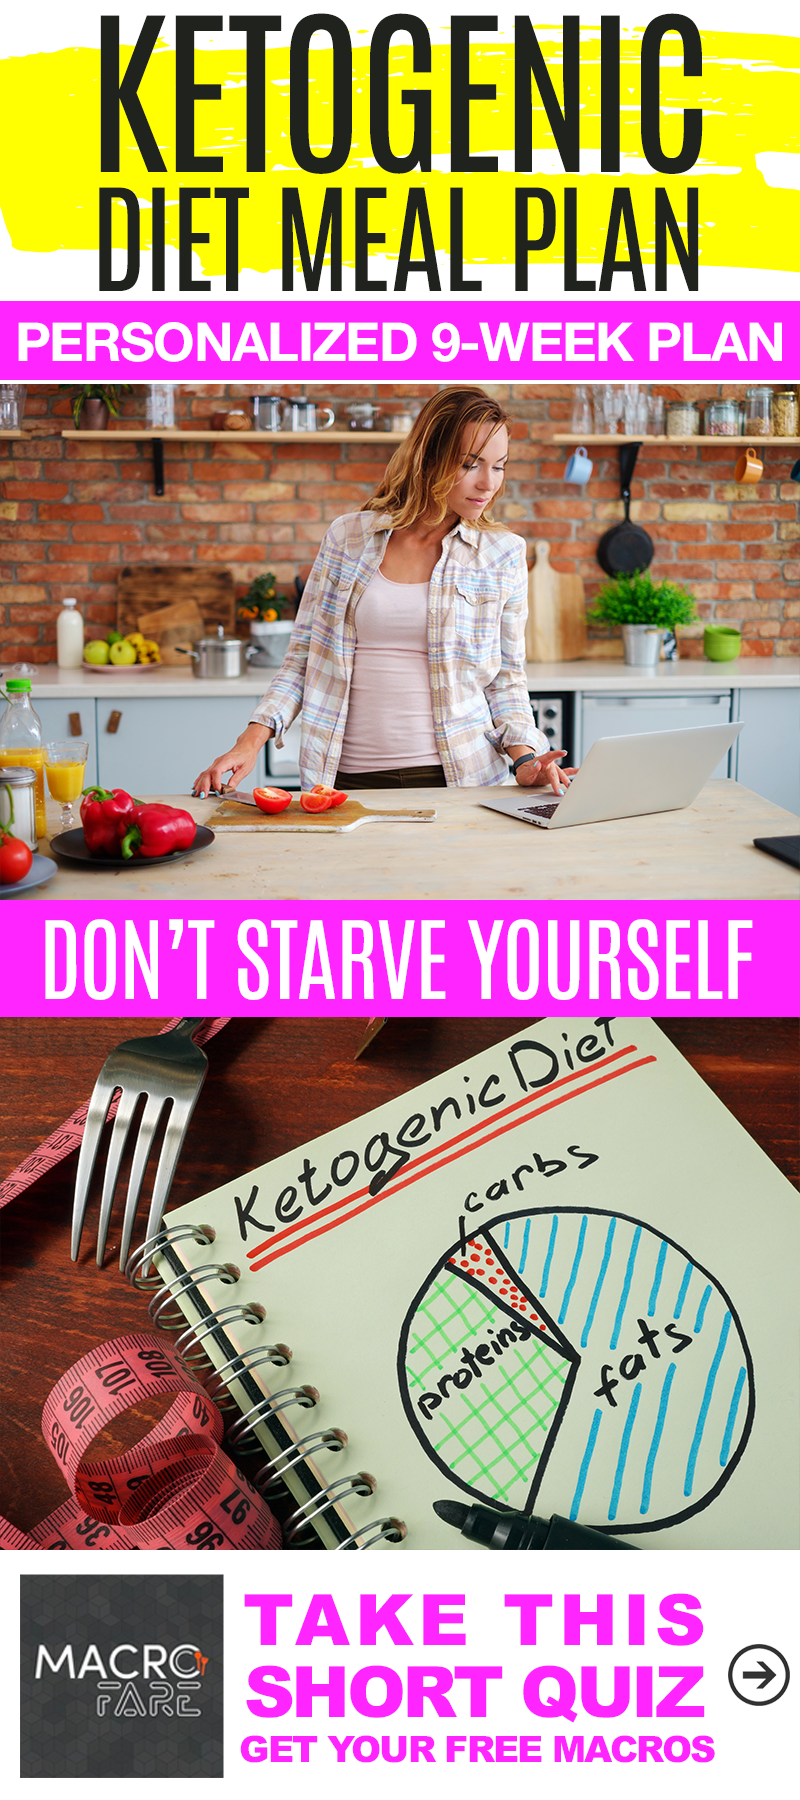 9 Week Personalized Ketogenic Diet Meal Plan With Full Recipes